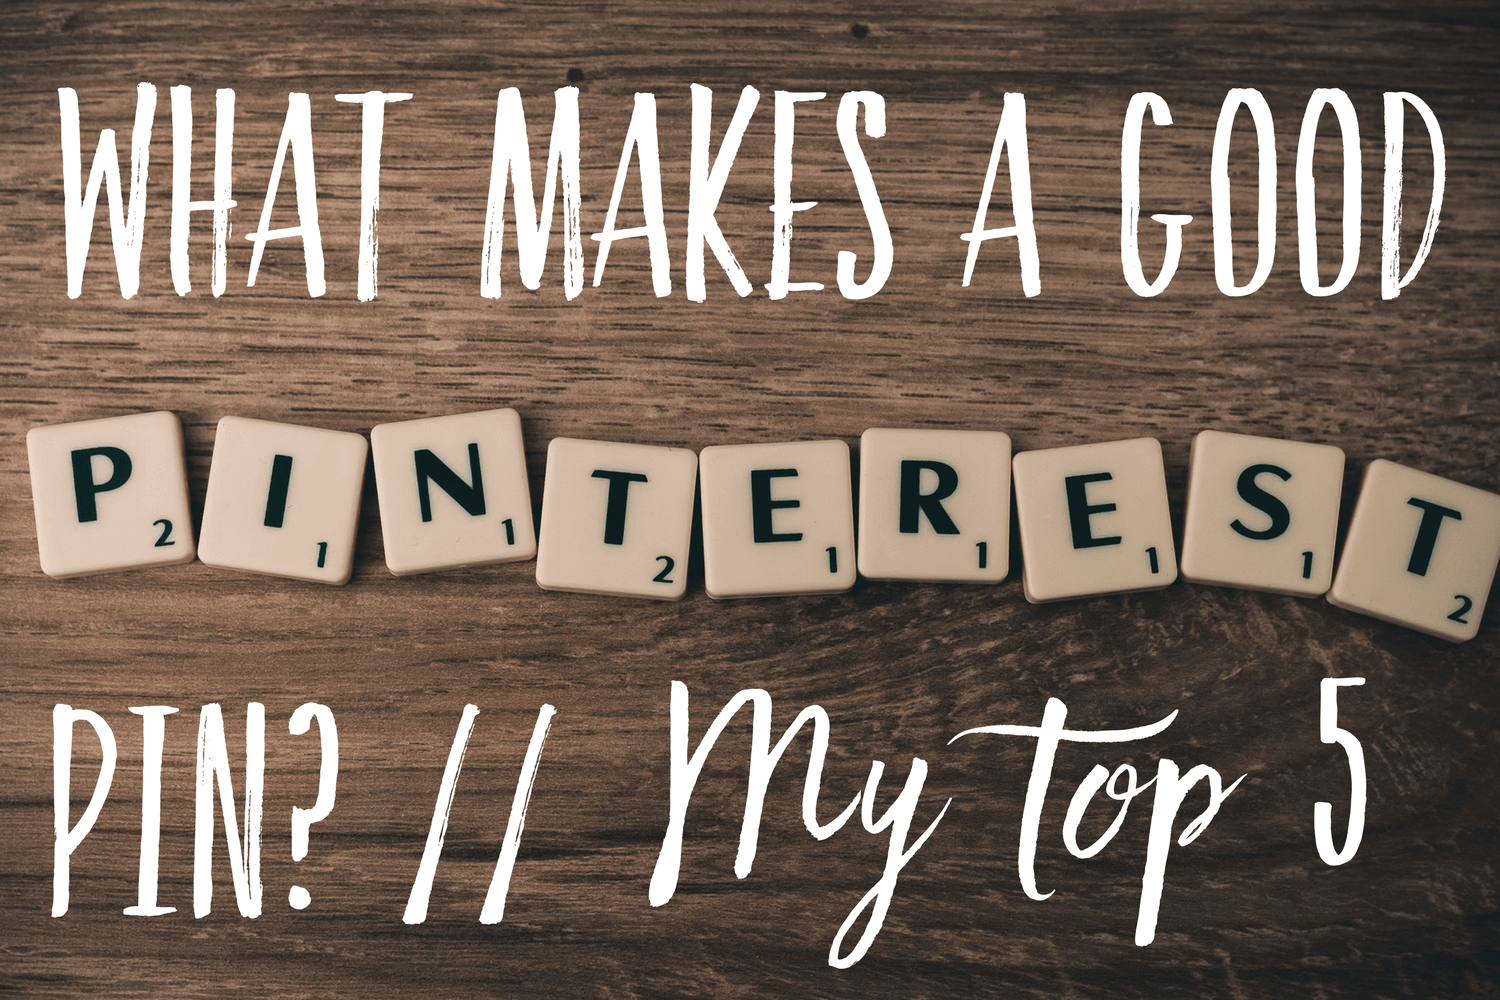 What makes a good Pinterest pin? My top 5 pins